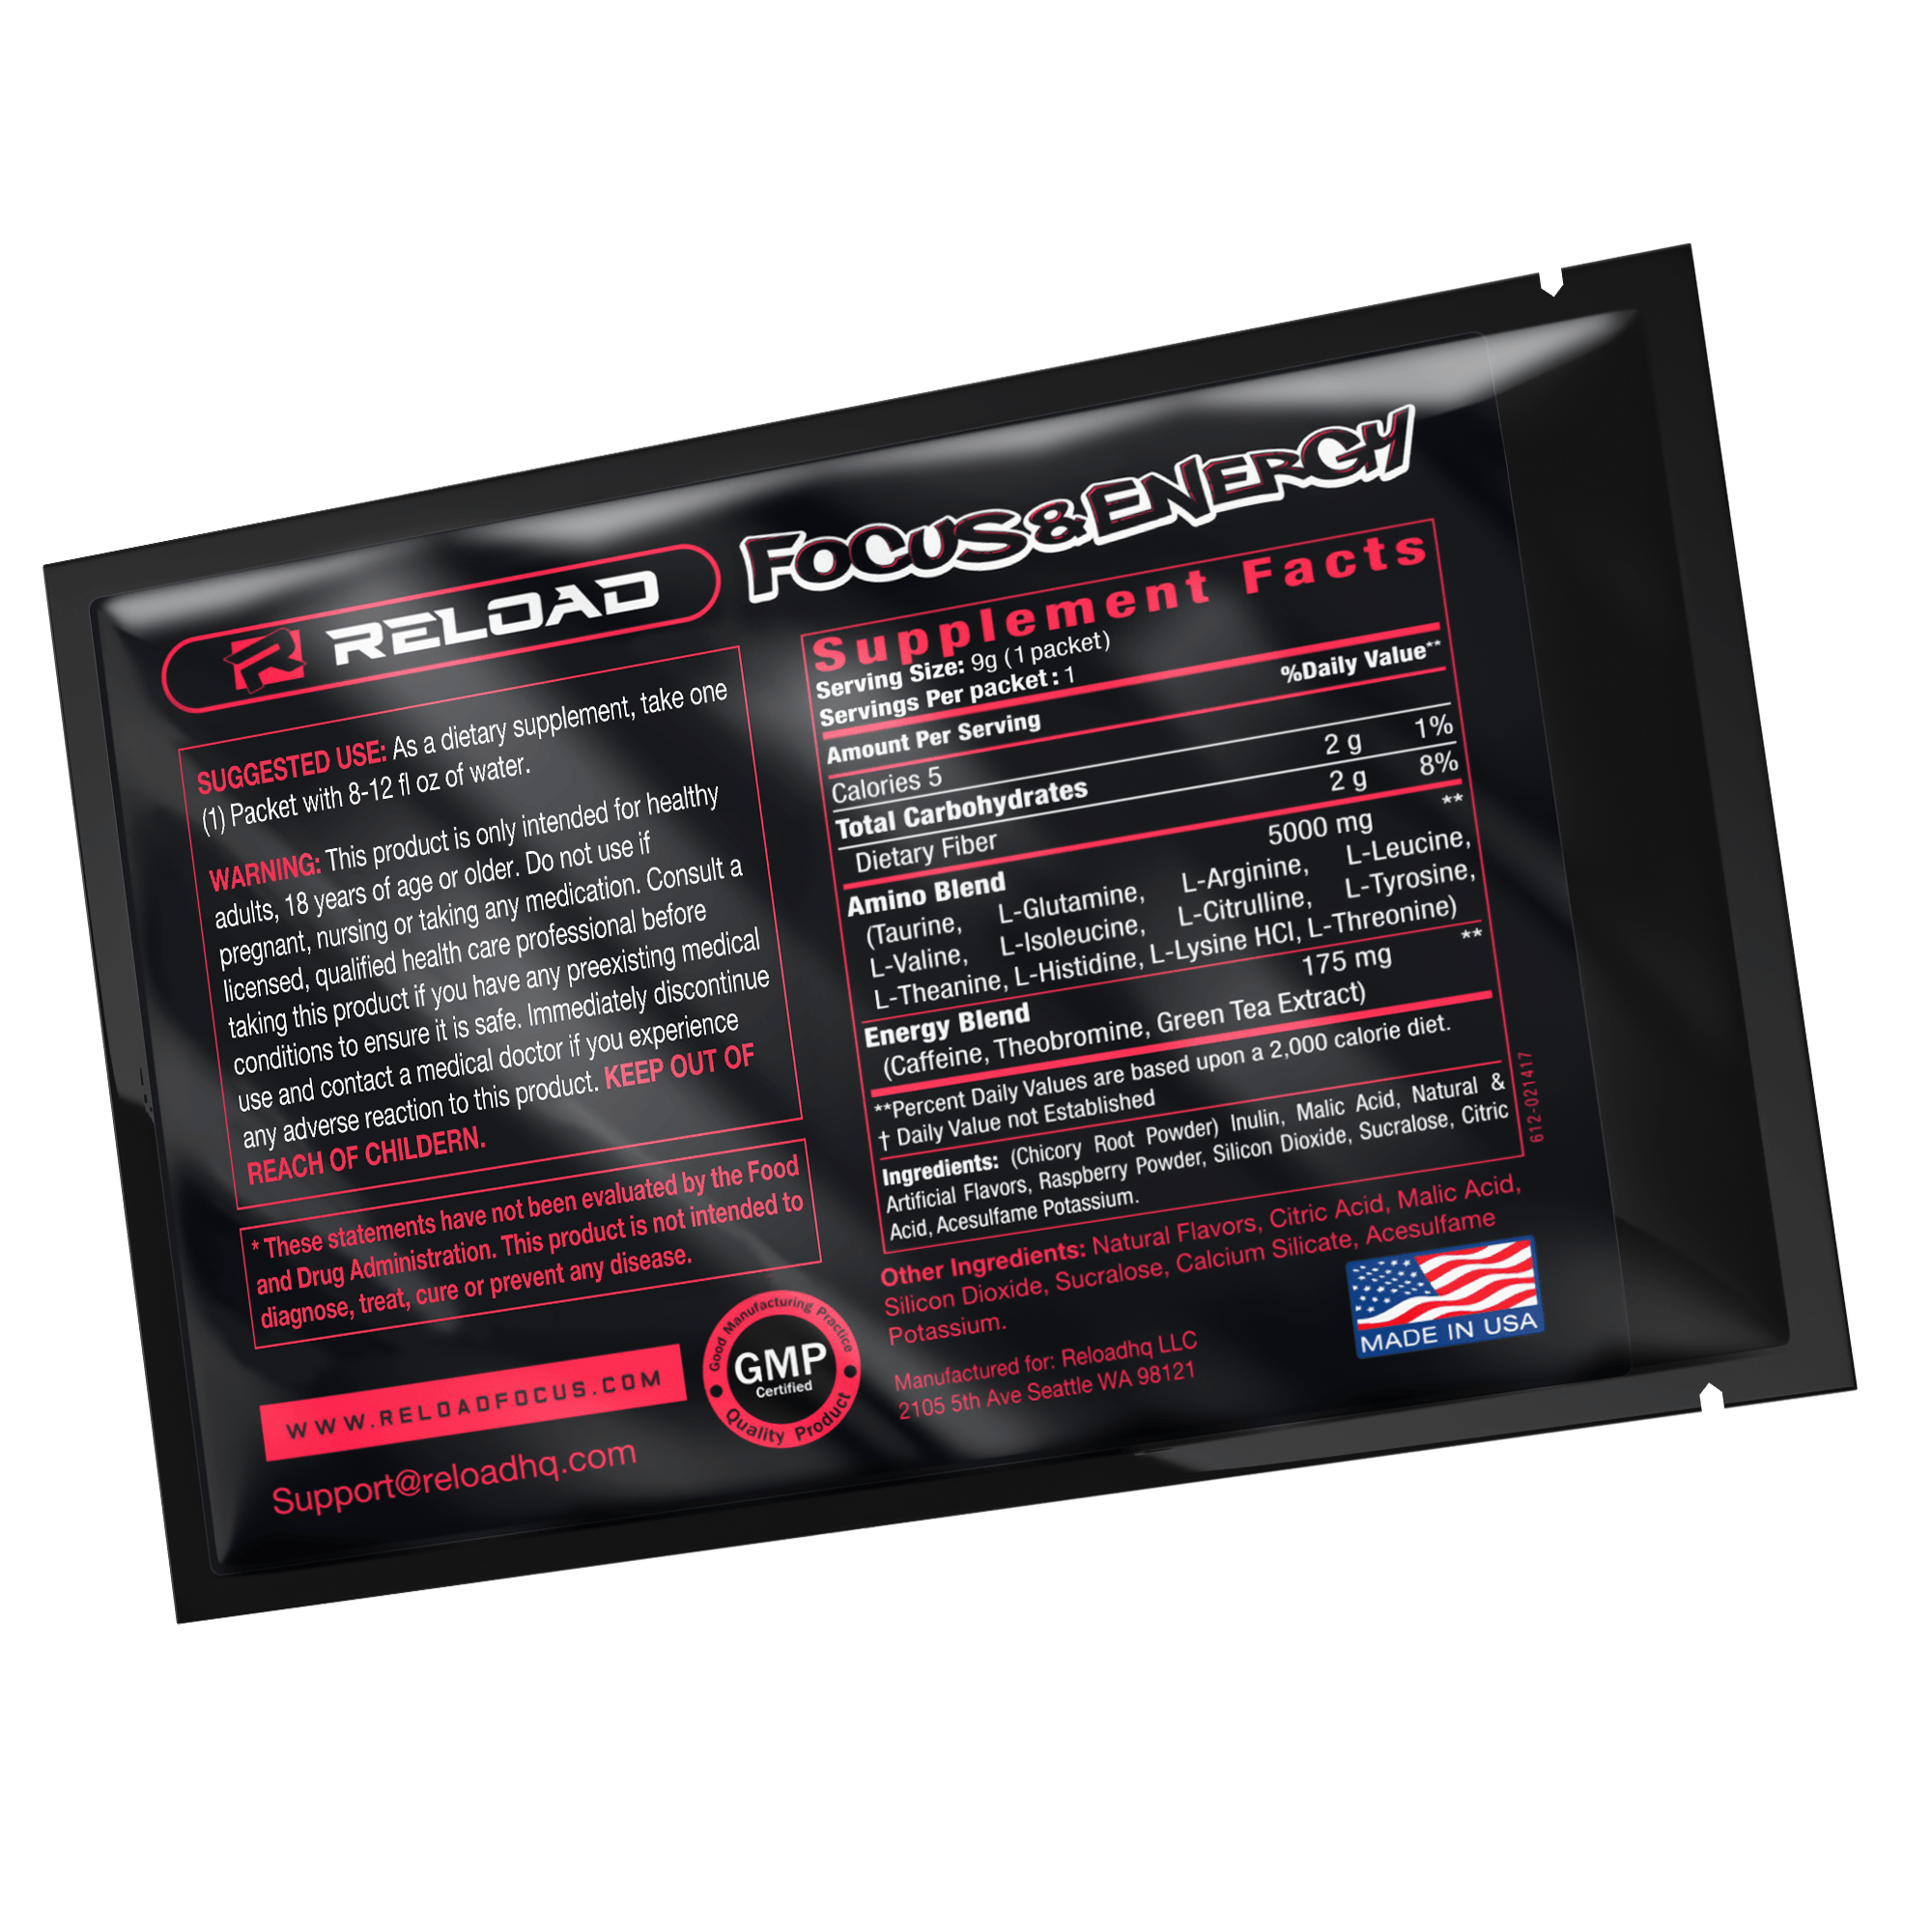 3 RASPBERRY ICED TEA SINGLE SERVING PACKS - Reload Focus & Energy